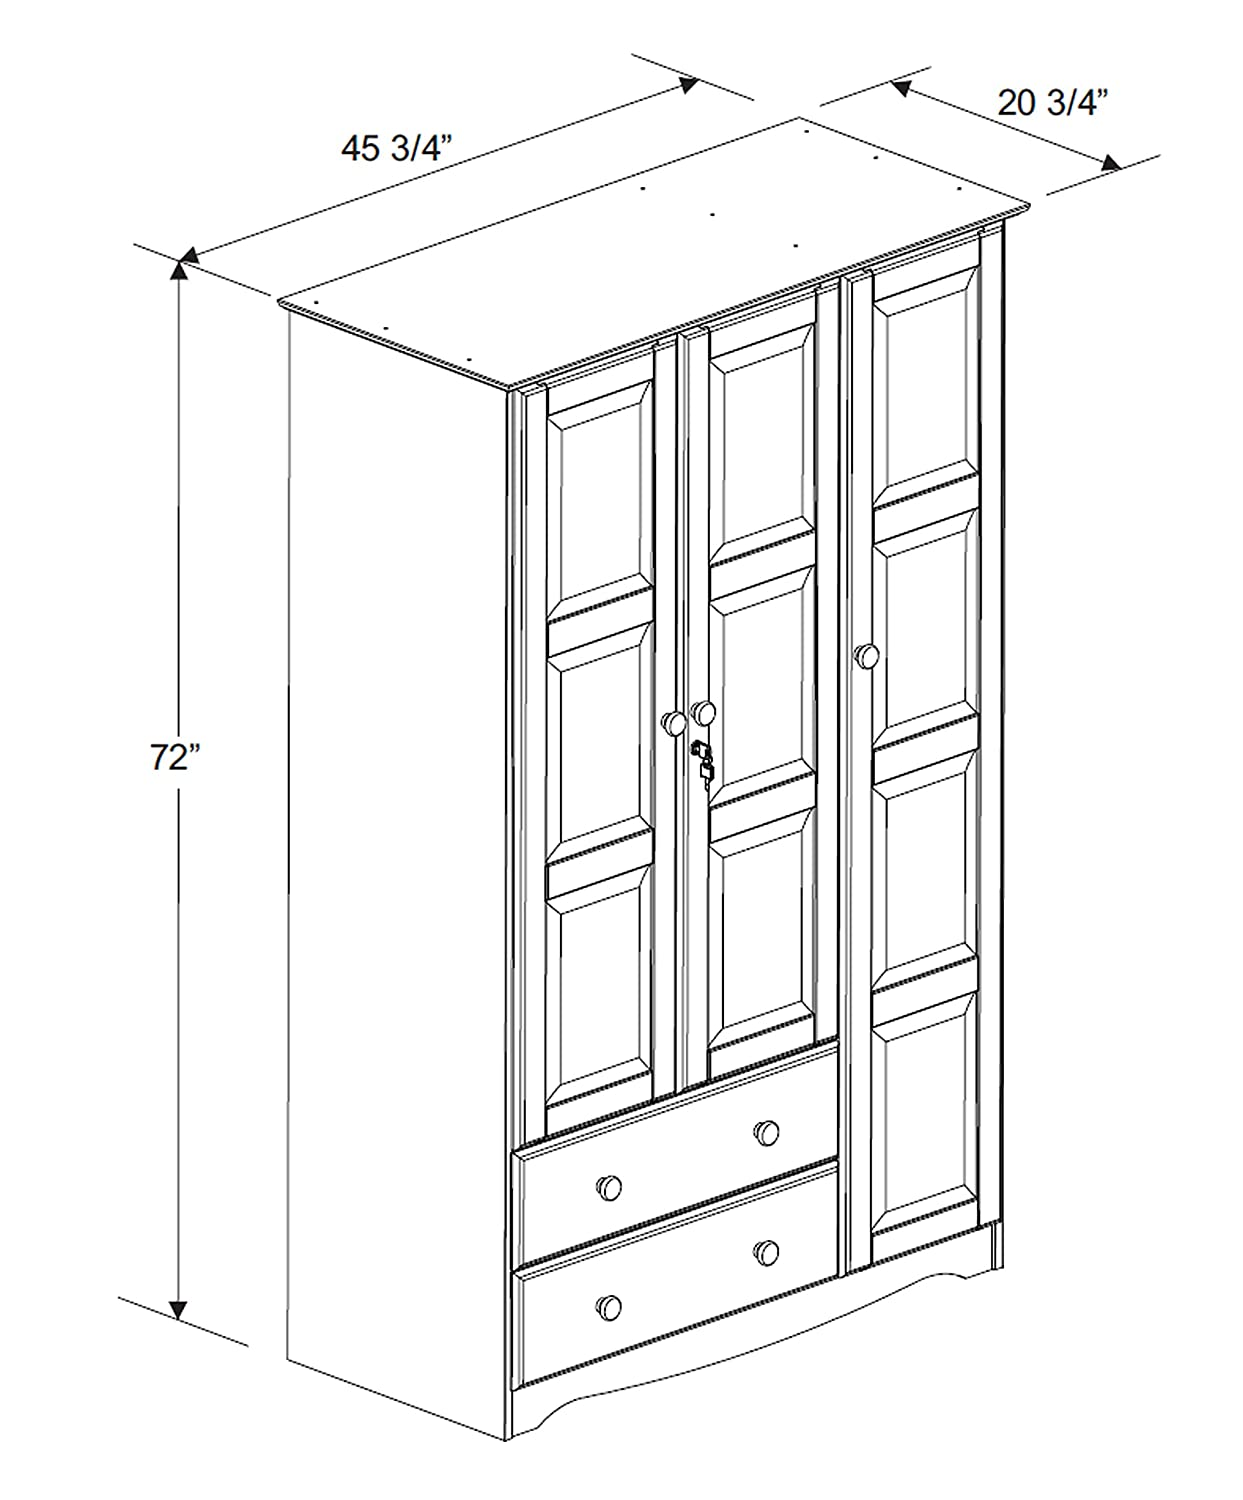 100 Solid Wood Grand Wardrobe Armoire Closet by Palace Imports, White, 46 W x 72 H x 21 D. 4 Small Shelves, 1 Clothing Rod, 2 Drawers, 1 Lock Included. Additional Large Shelves Sold Separately.